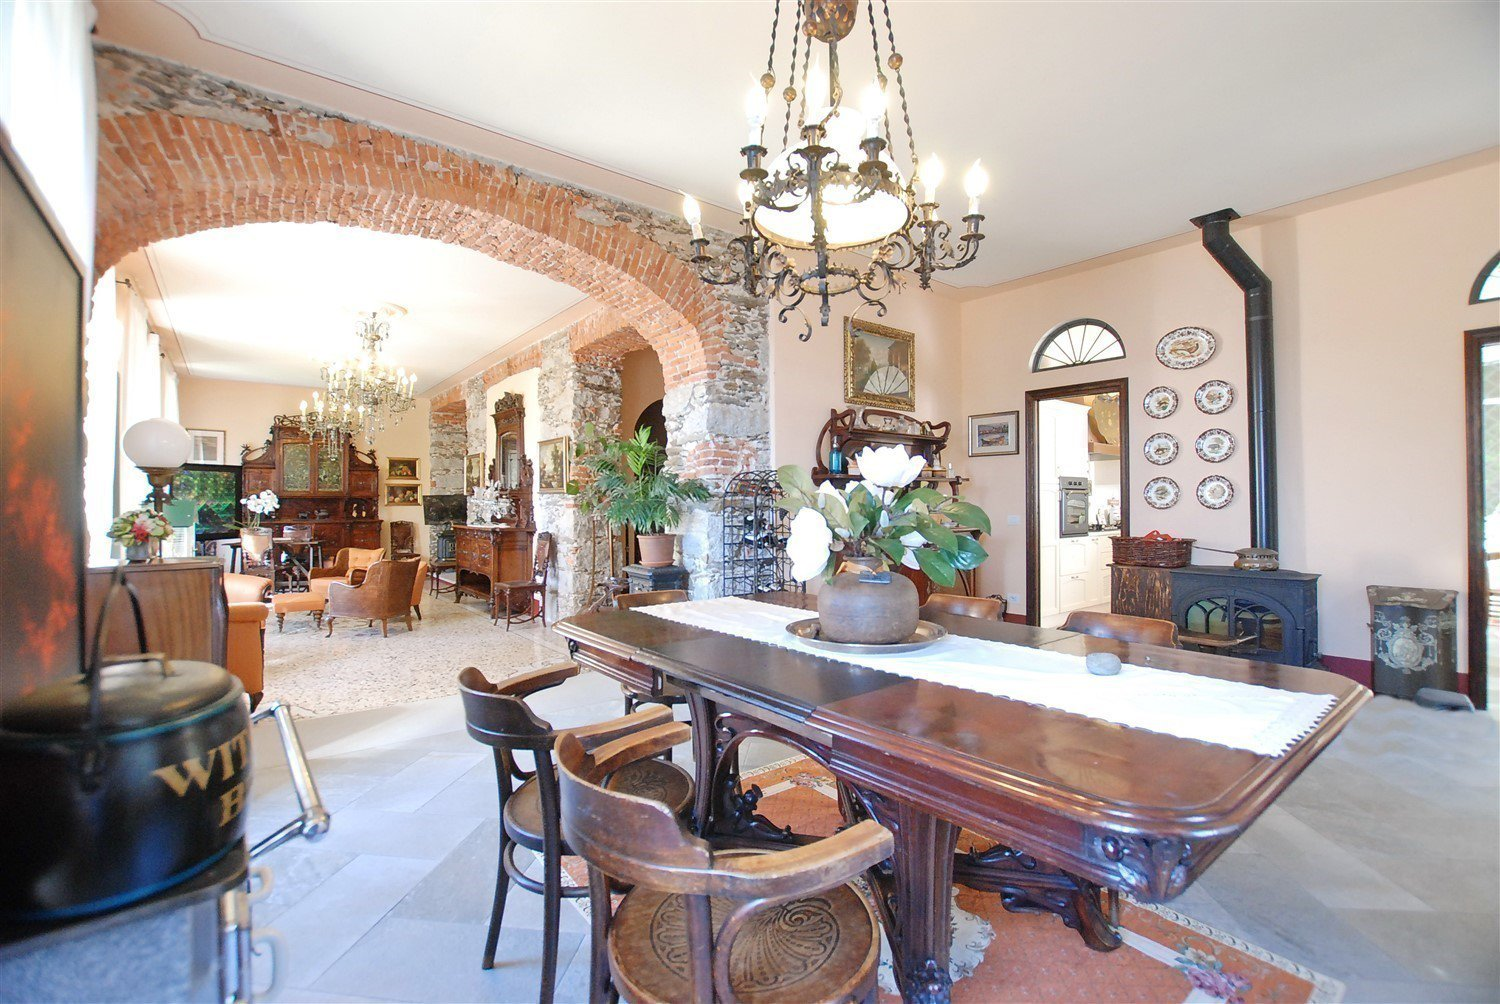 Historic villa with guesthouse and land for sale in Verbania - large salon